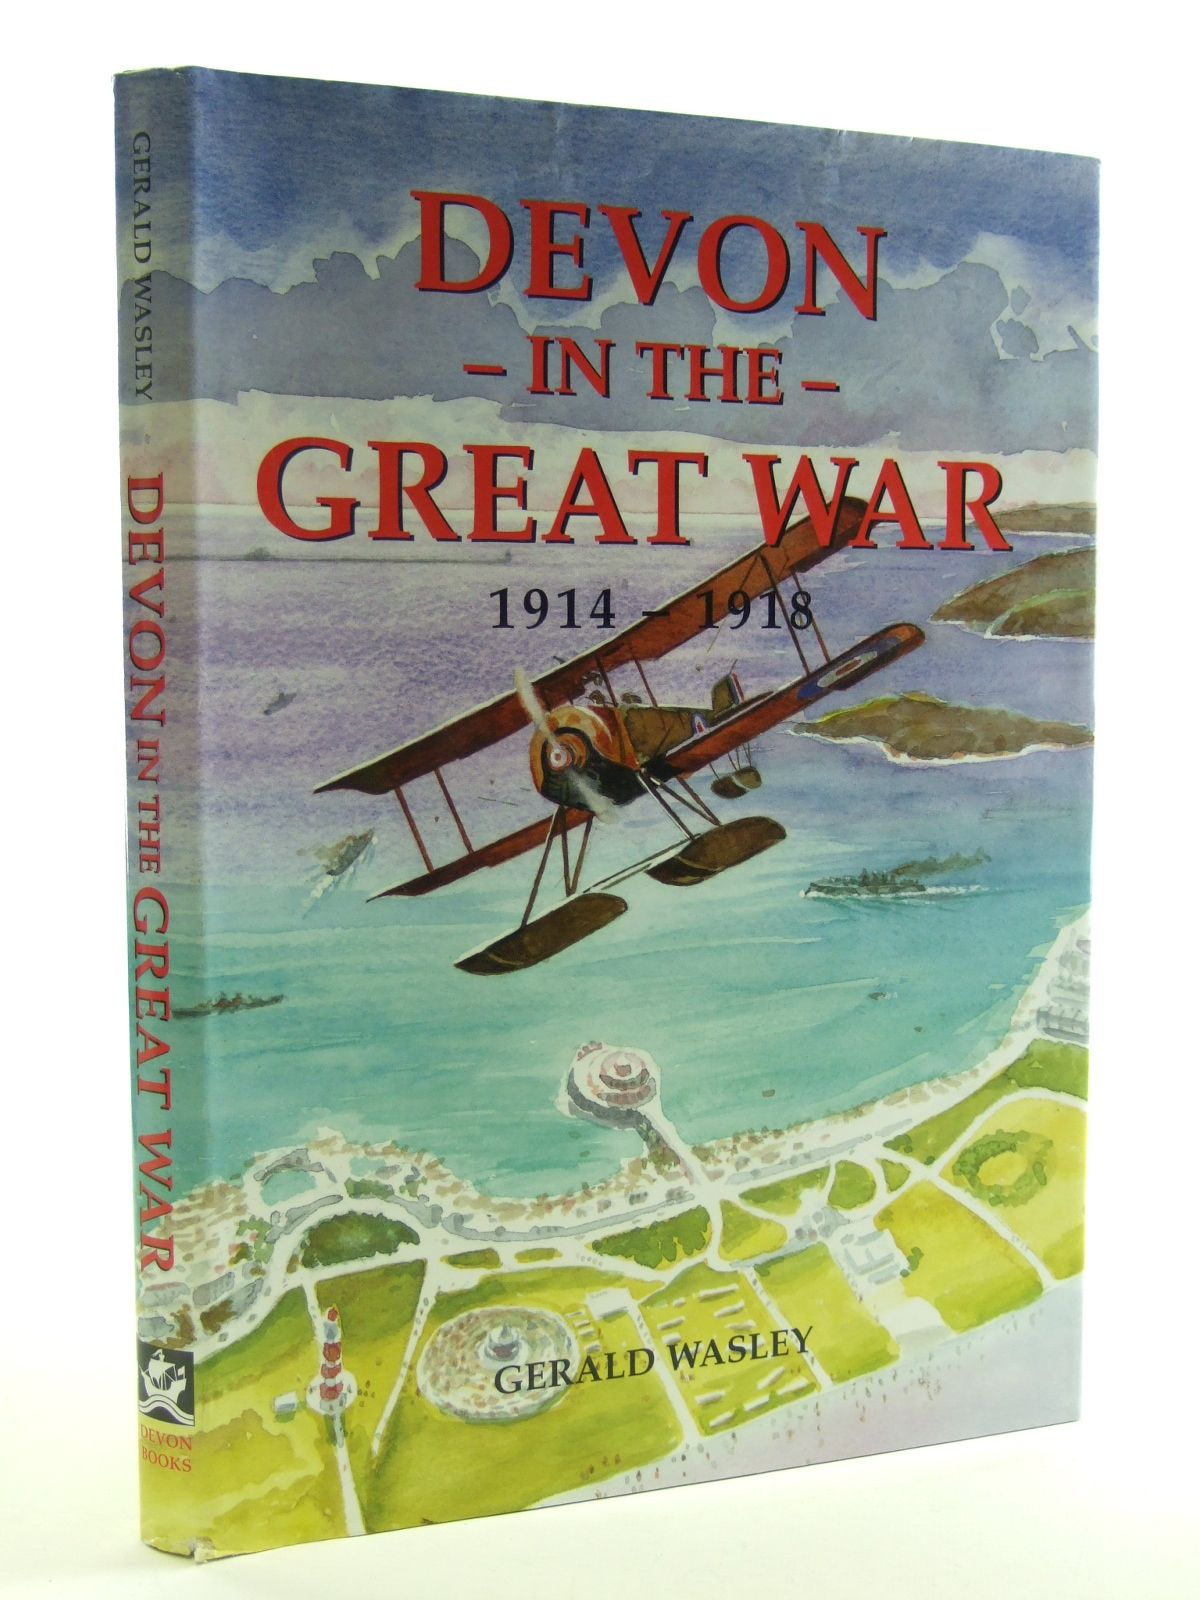 Photo of DEVON IN THE GREAT WAR 1914-1918 written by Wasley, Gerald published by Devon Books (STOCK CODE: 1603072)  for sale by Stella & Rose's Books